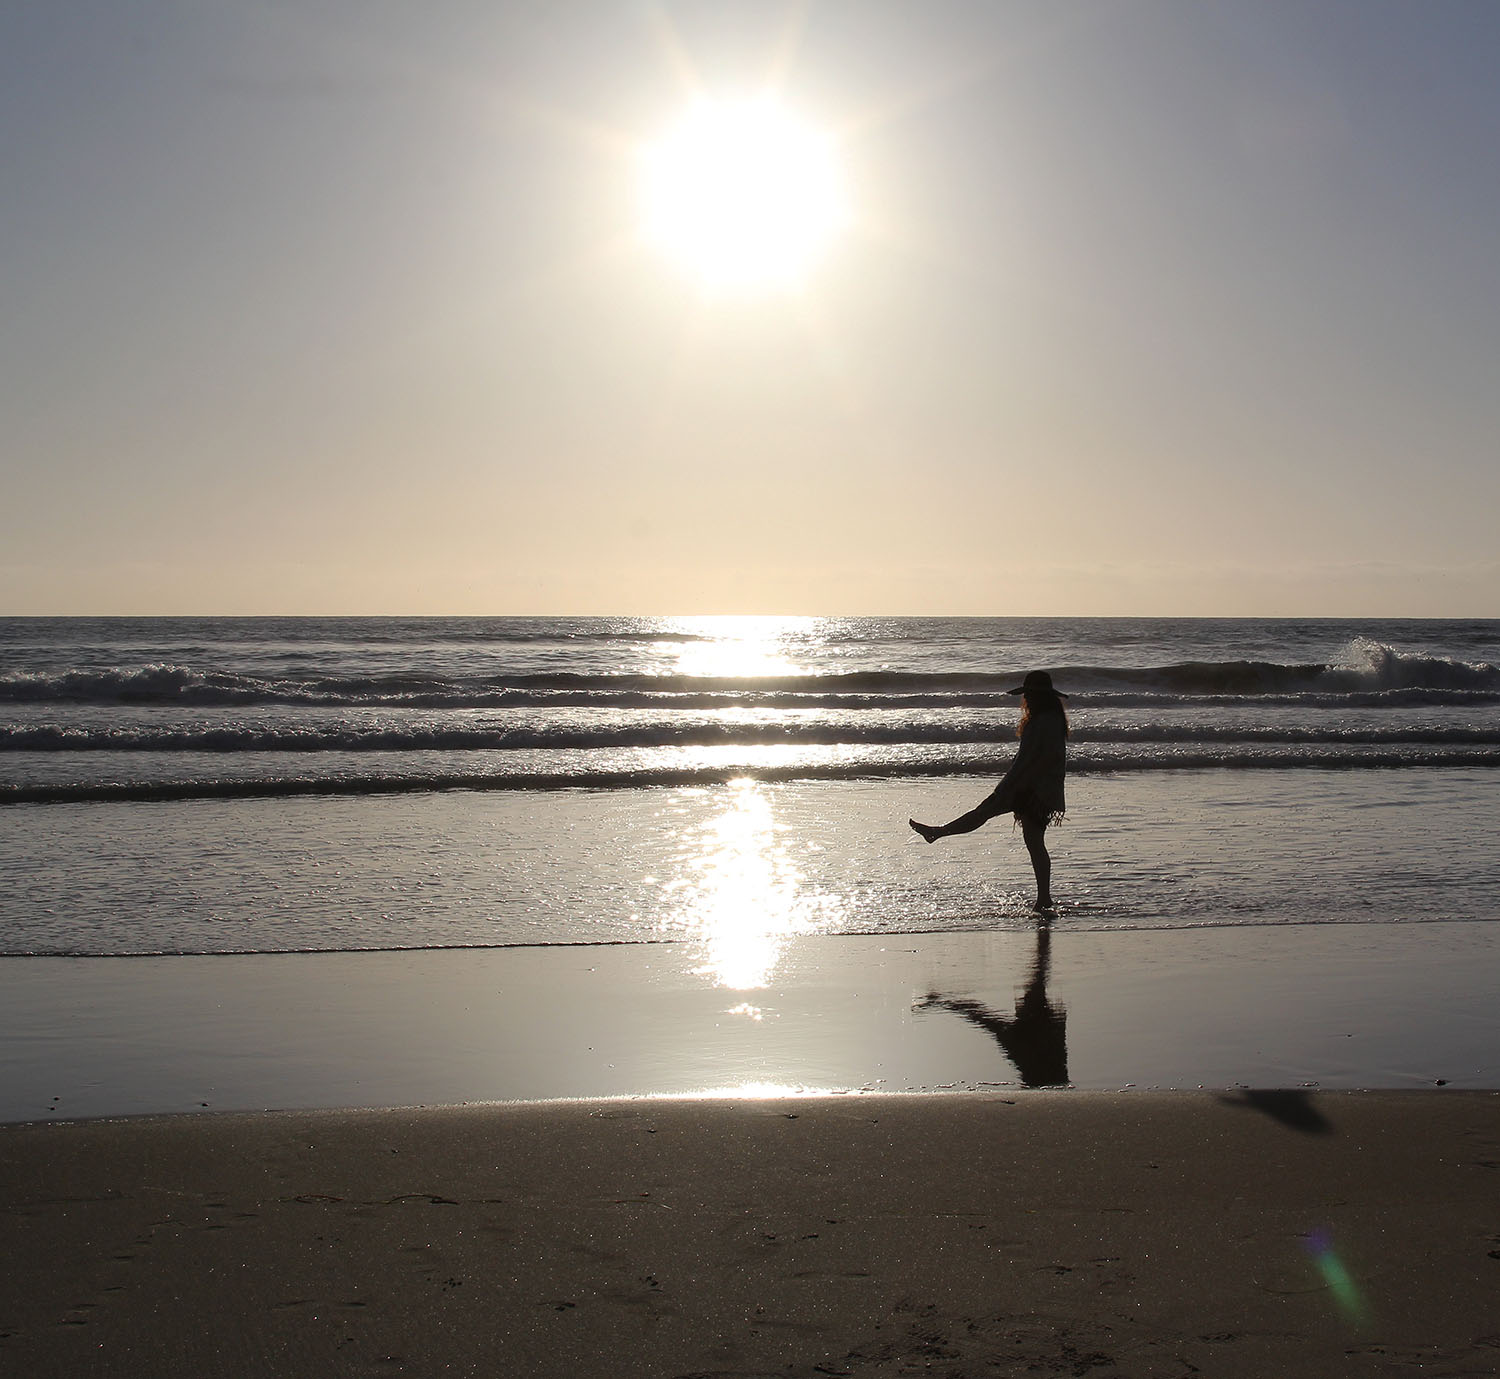 sunset at the beach with silhouette of woman kicking the water as the waves come in